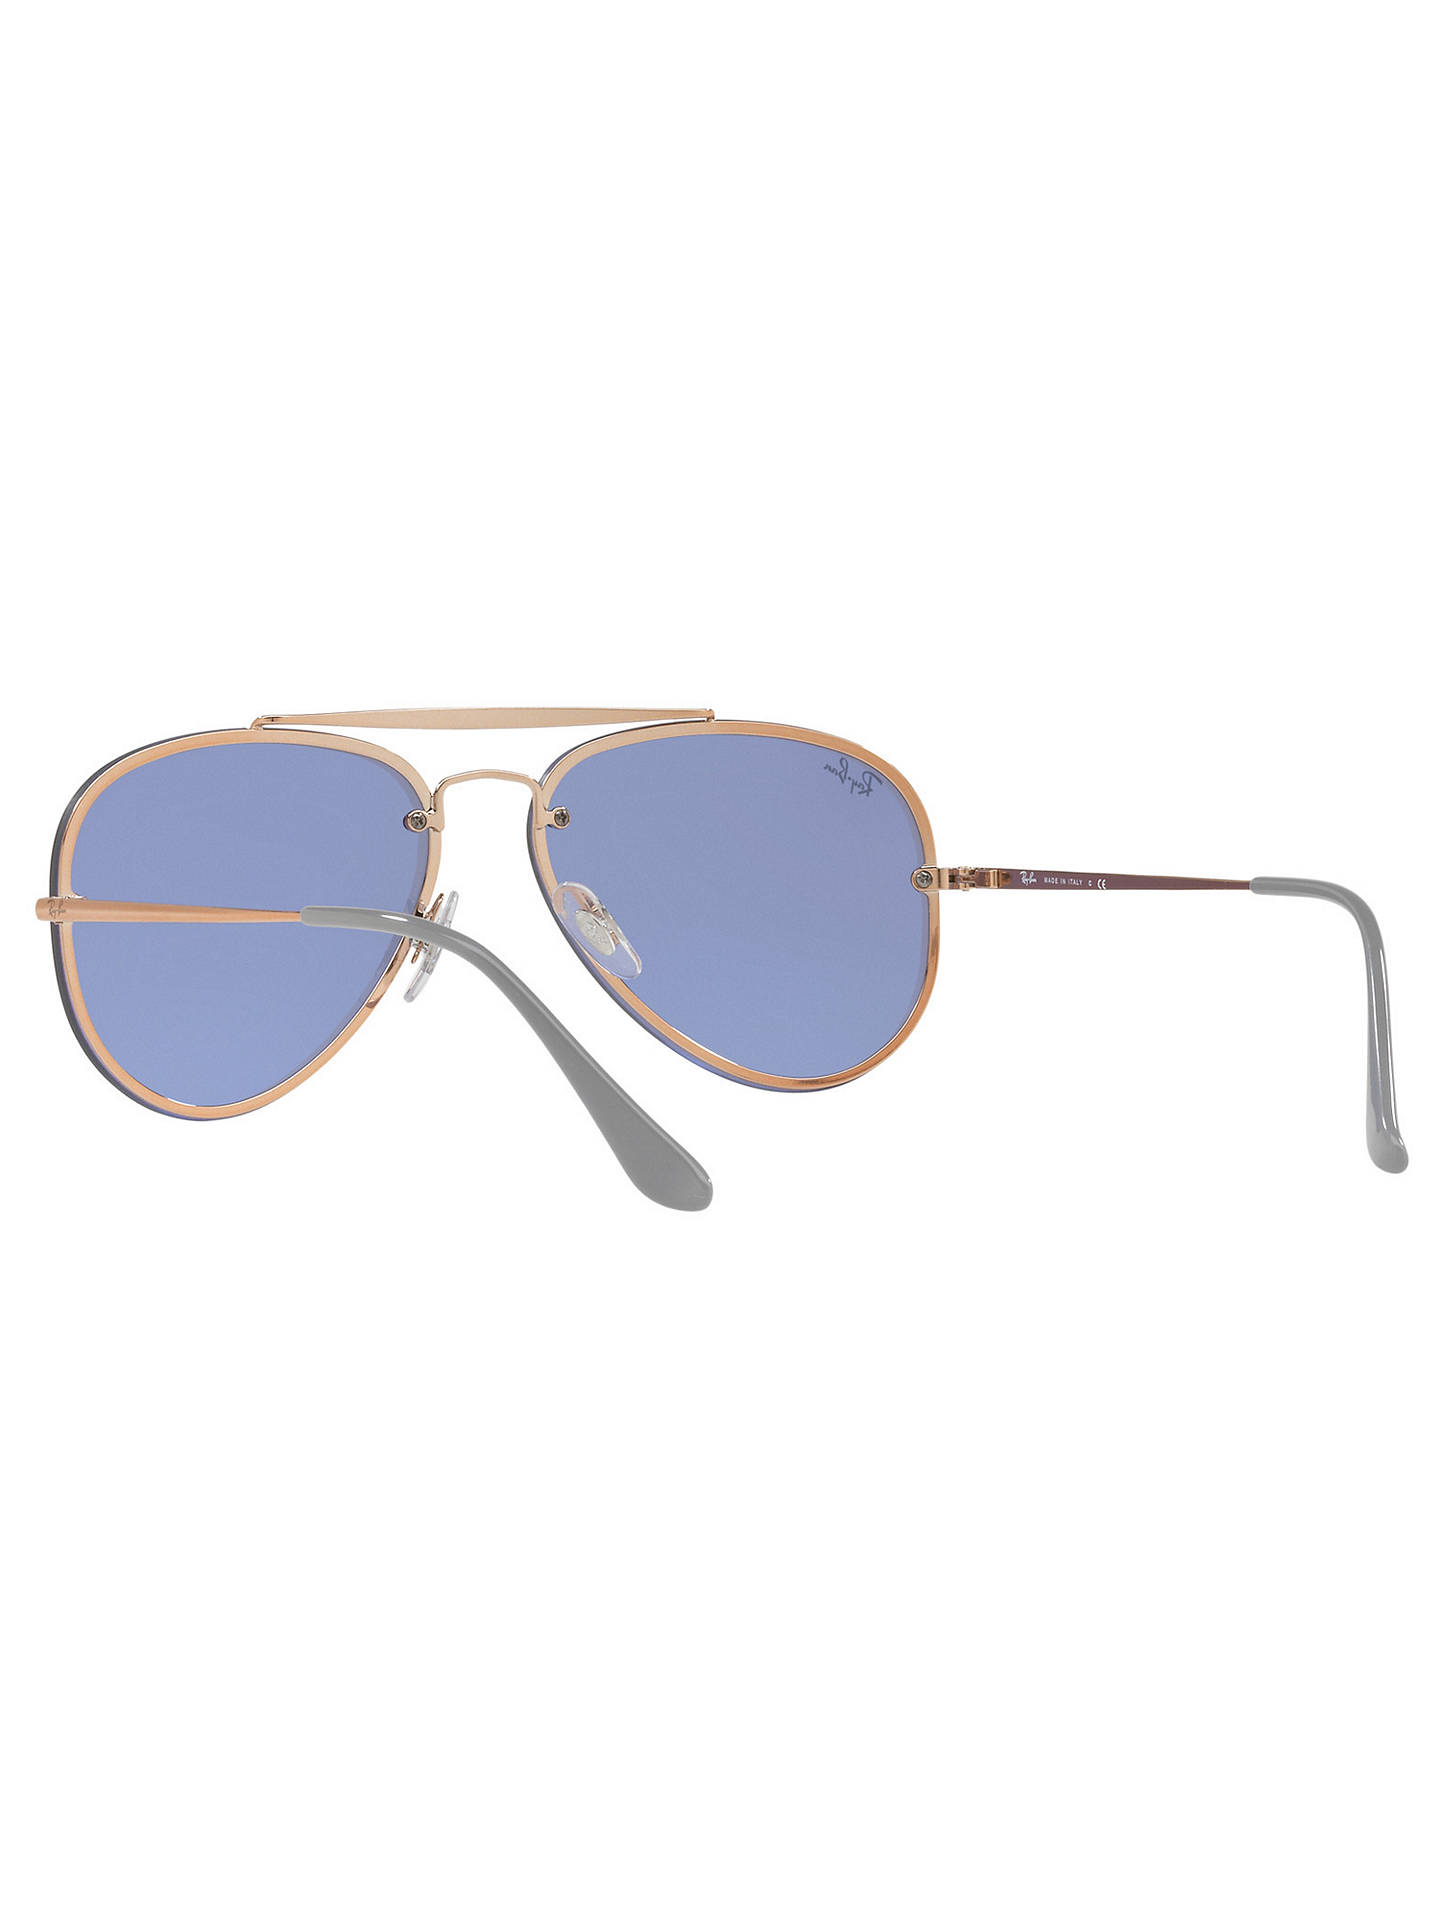 ... BuyRay-Ban RB3584N Unisex Blaze Aviator Sunglasses, Gold Mirror Blue  Online at johnlewis ... 06e44738e45f